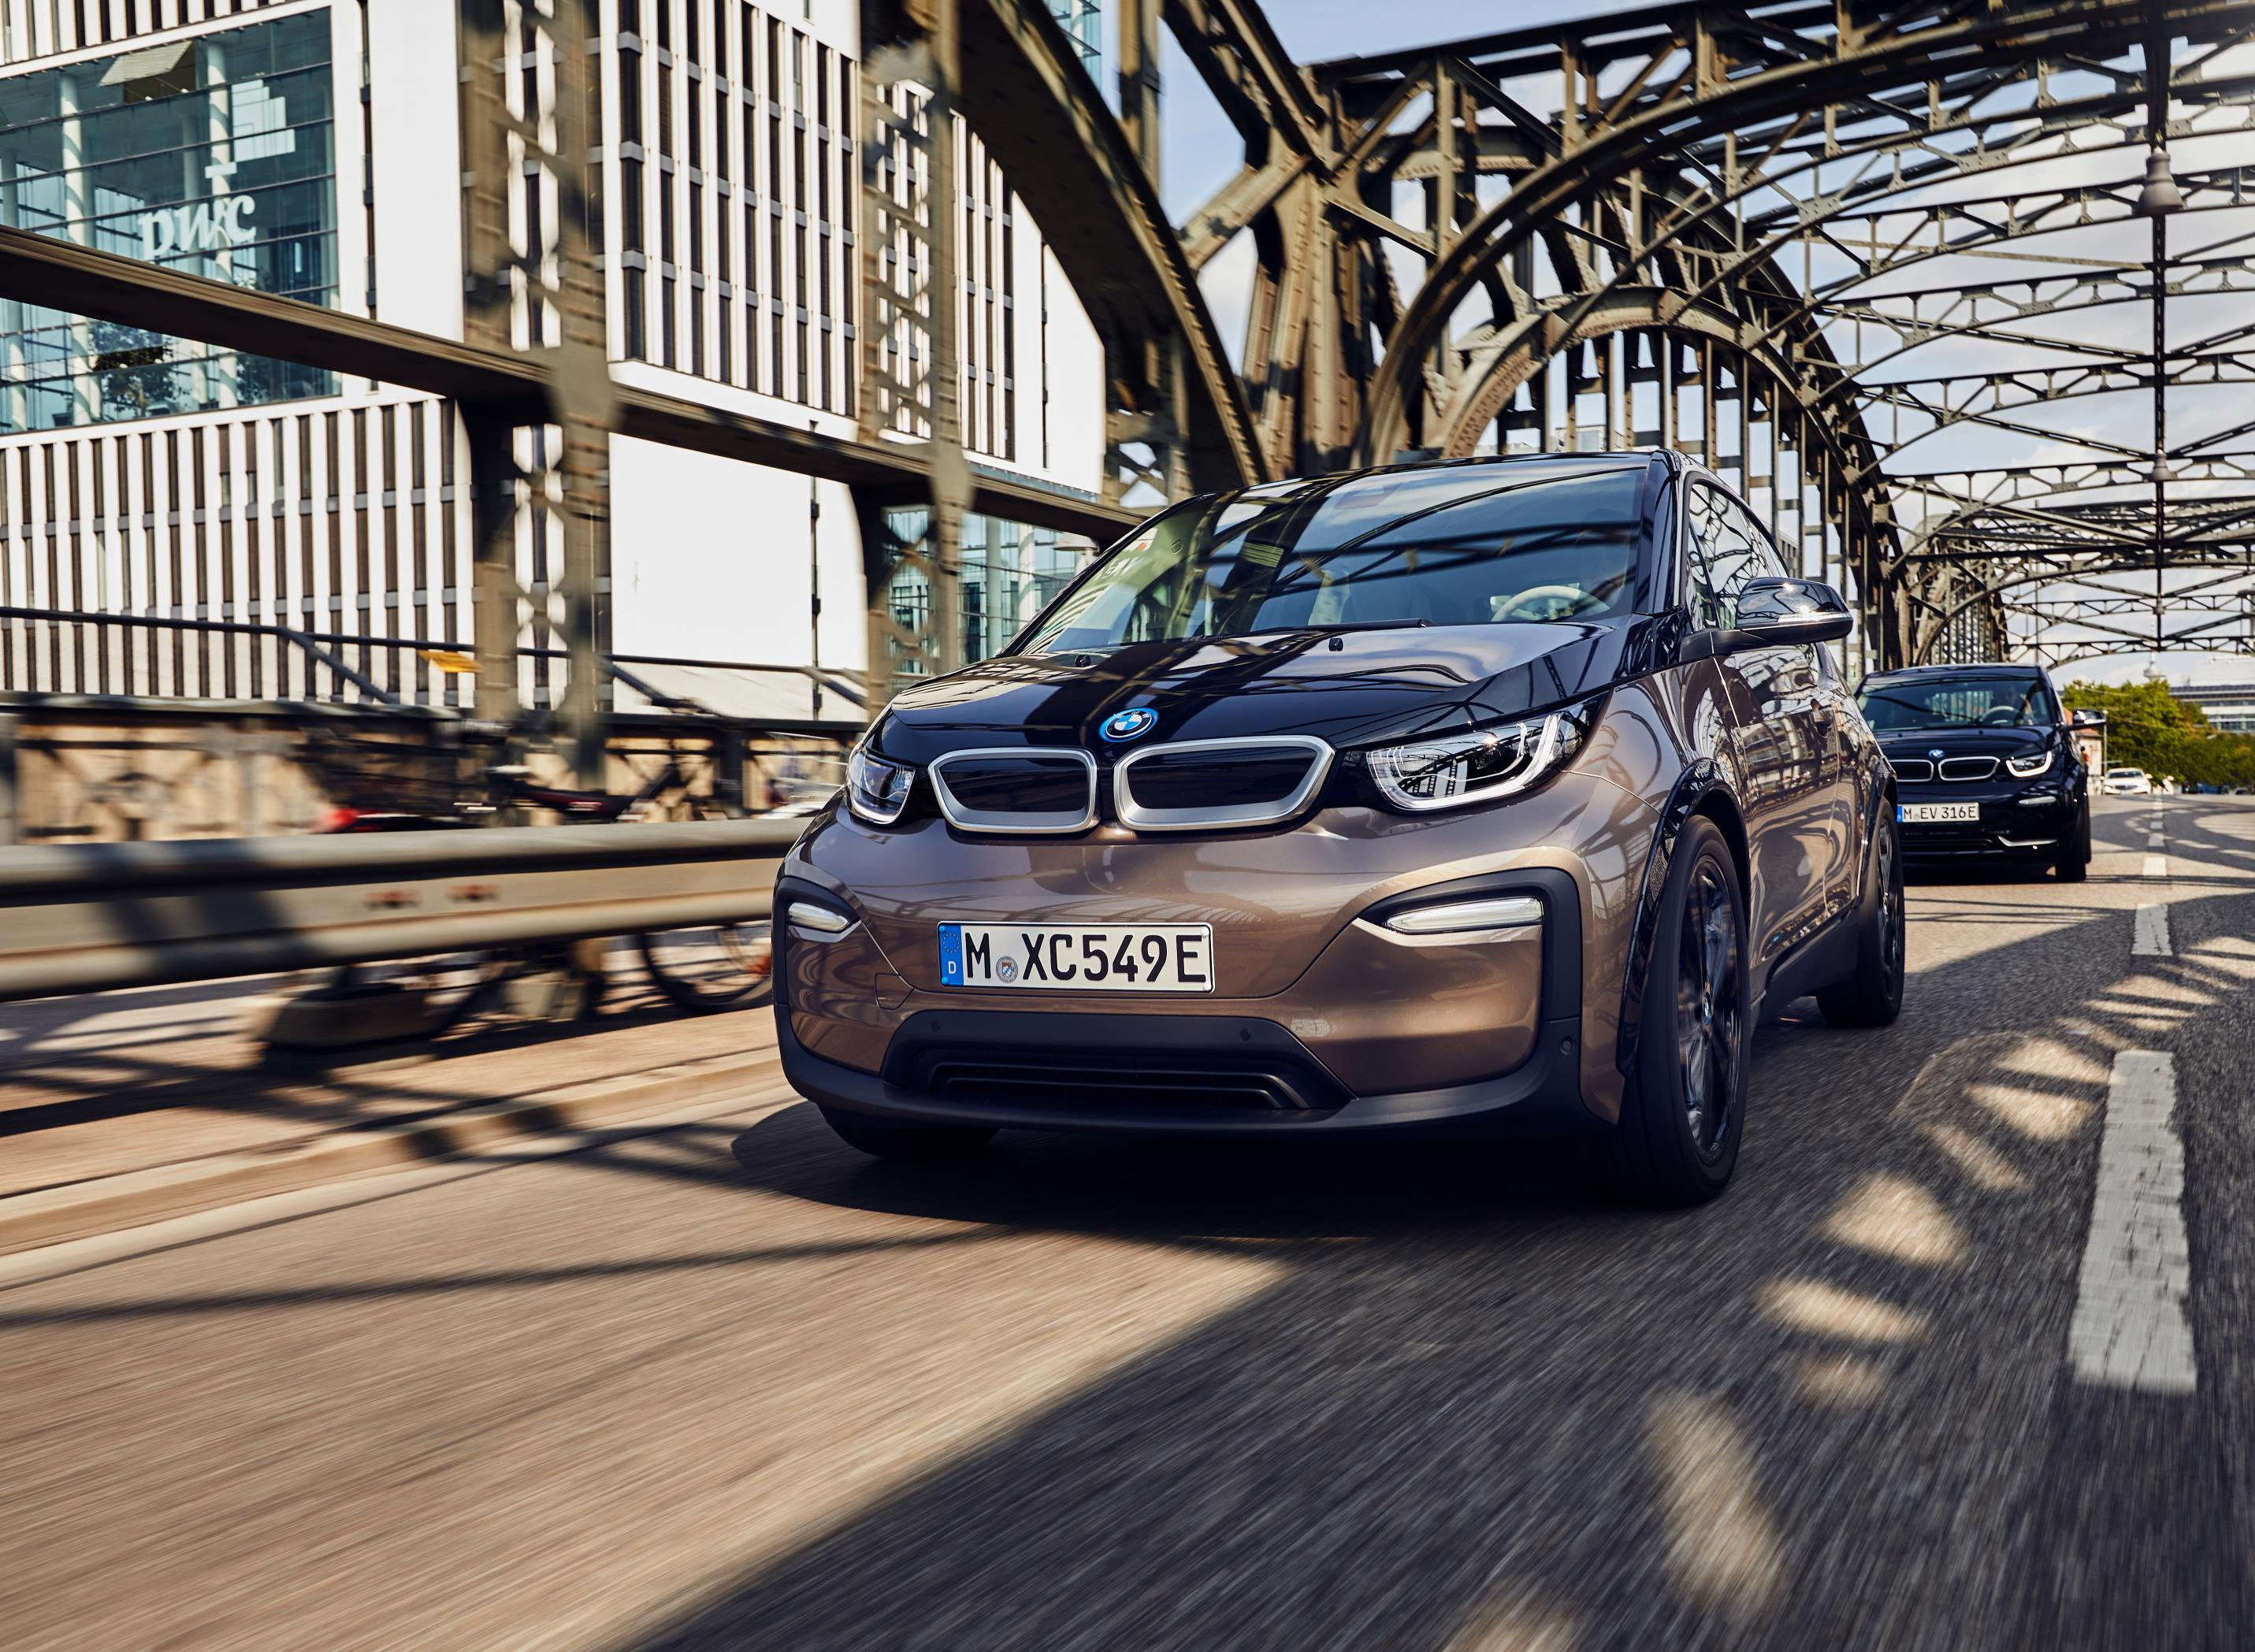 BMW's i3 combines low running costs and solid build quality